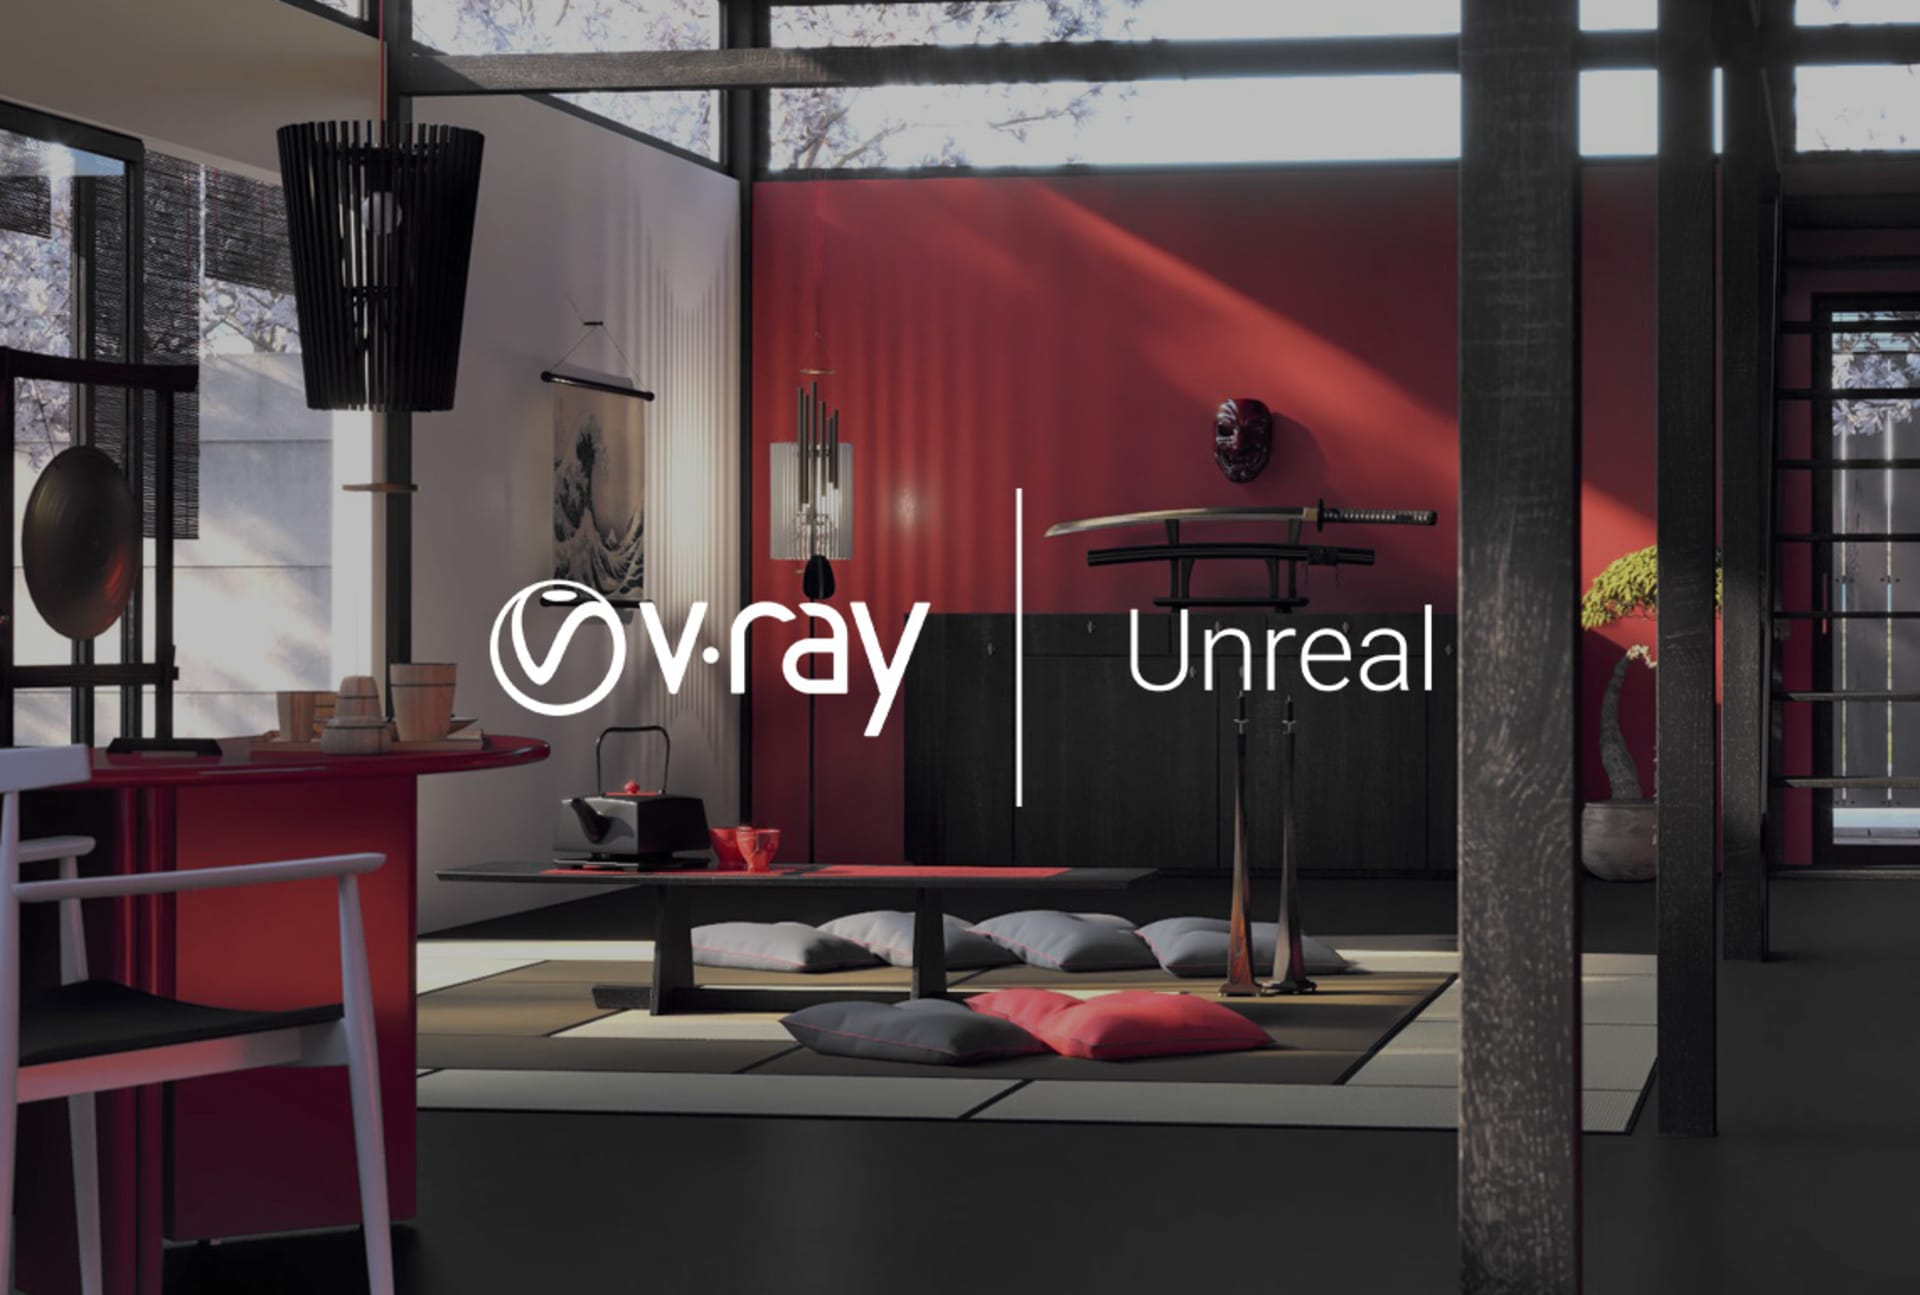 Chaos Launches V-Ray 5 for Unreal